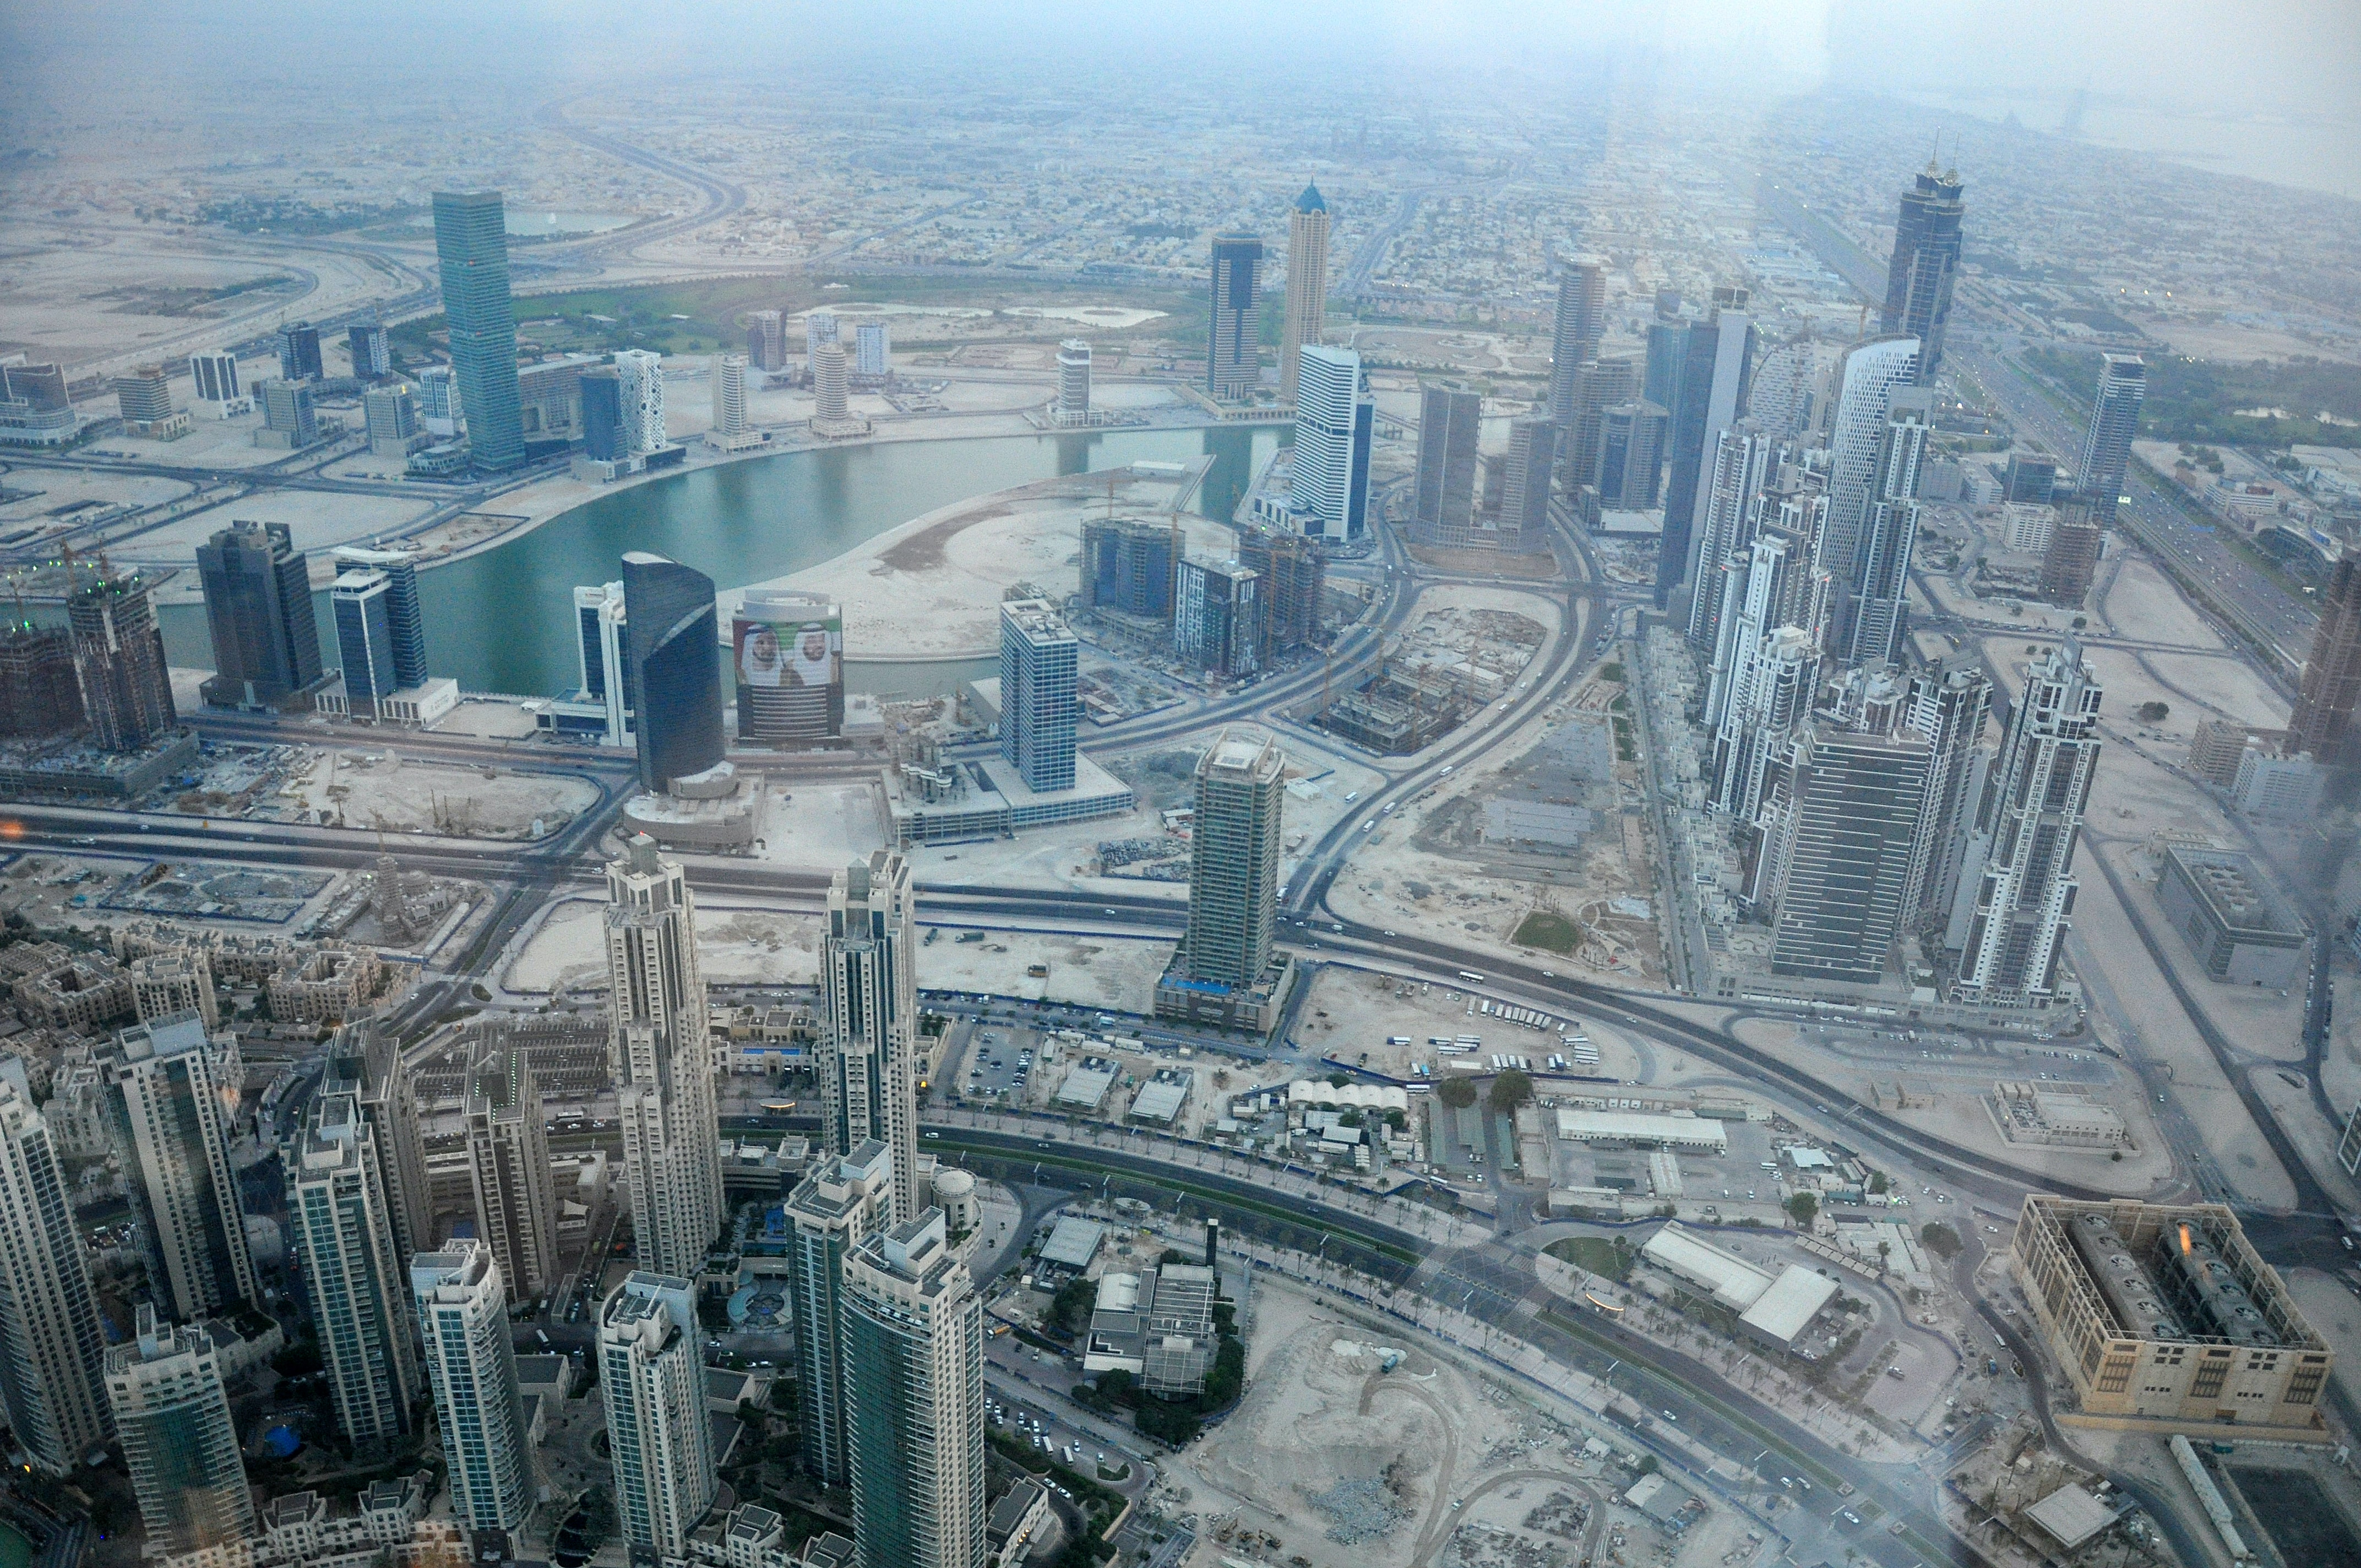 aerial view photography of Dubai during daytime